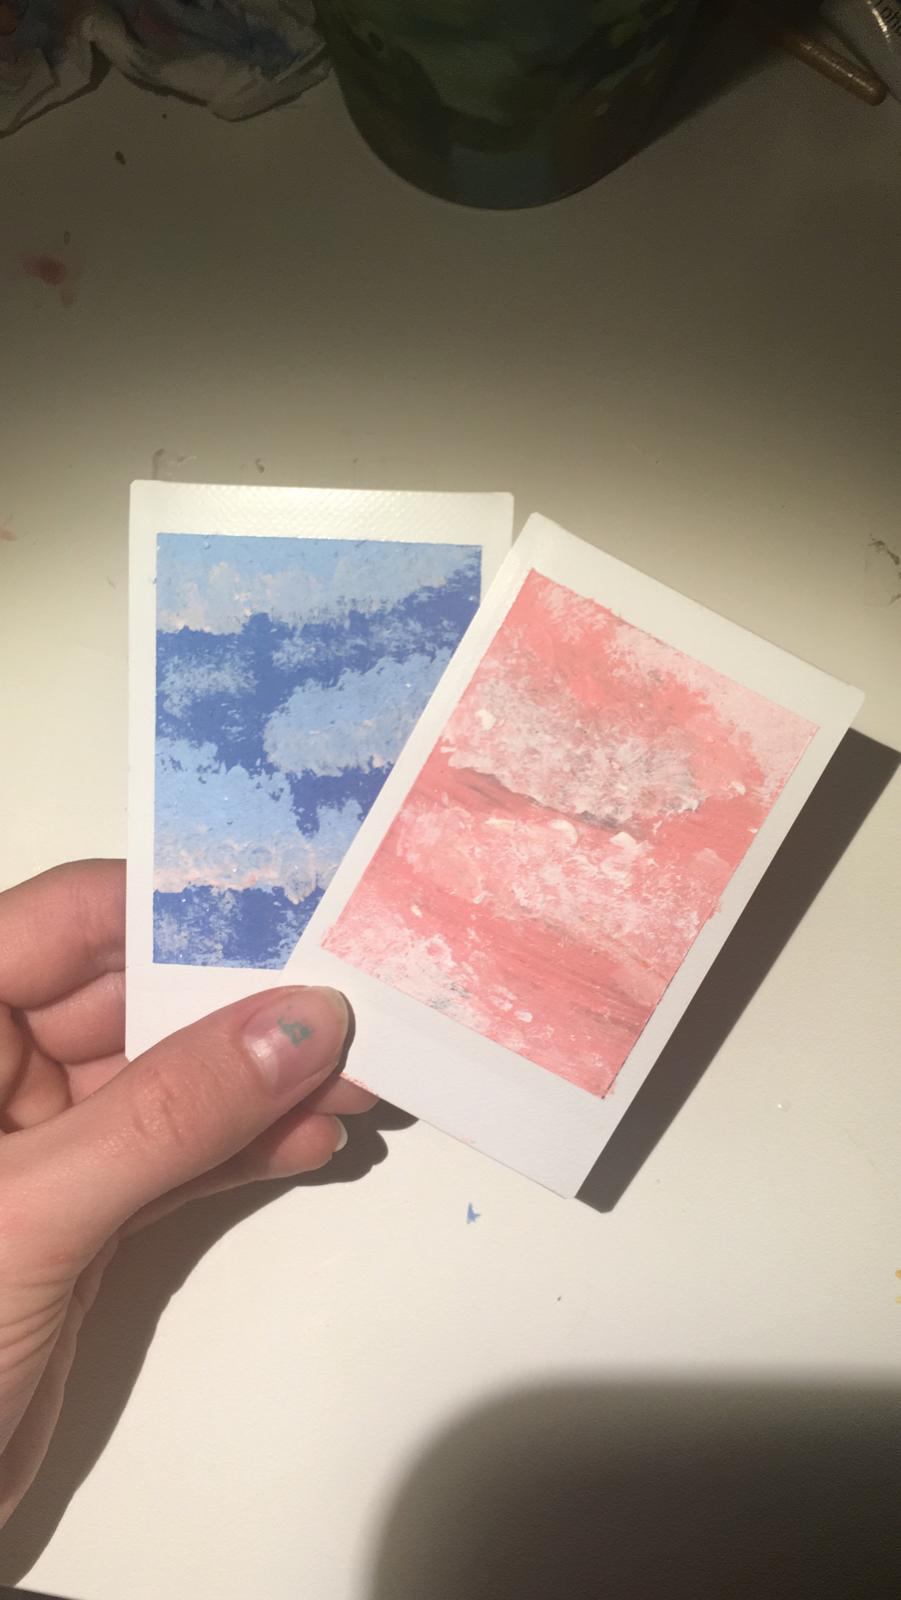 How to Paint on an Instax Photo